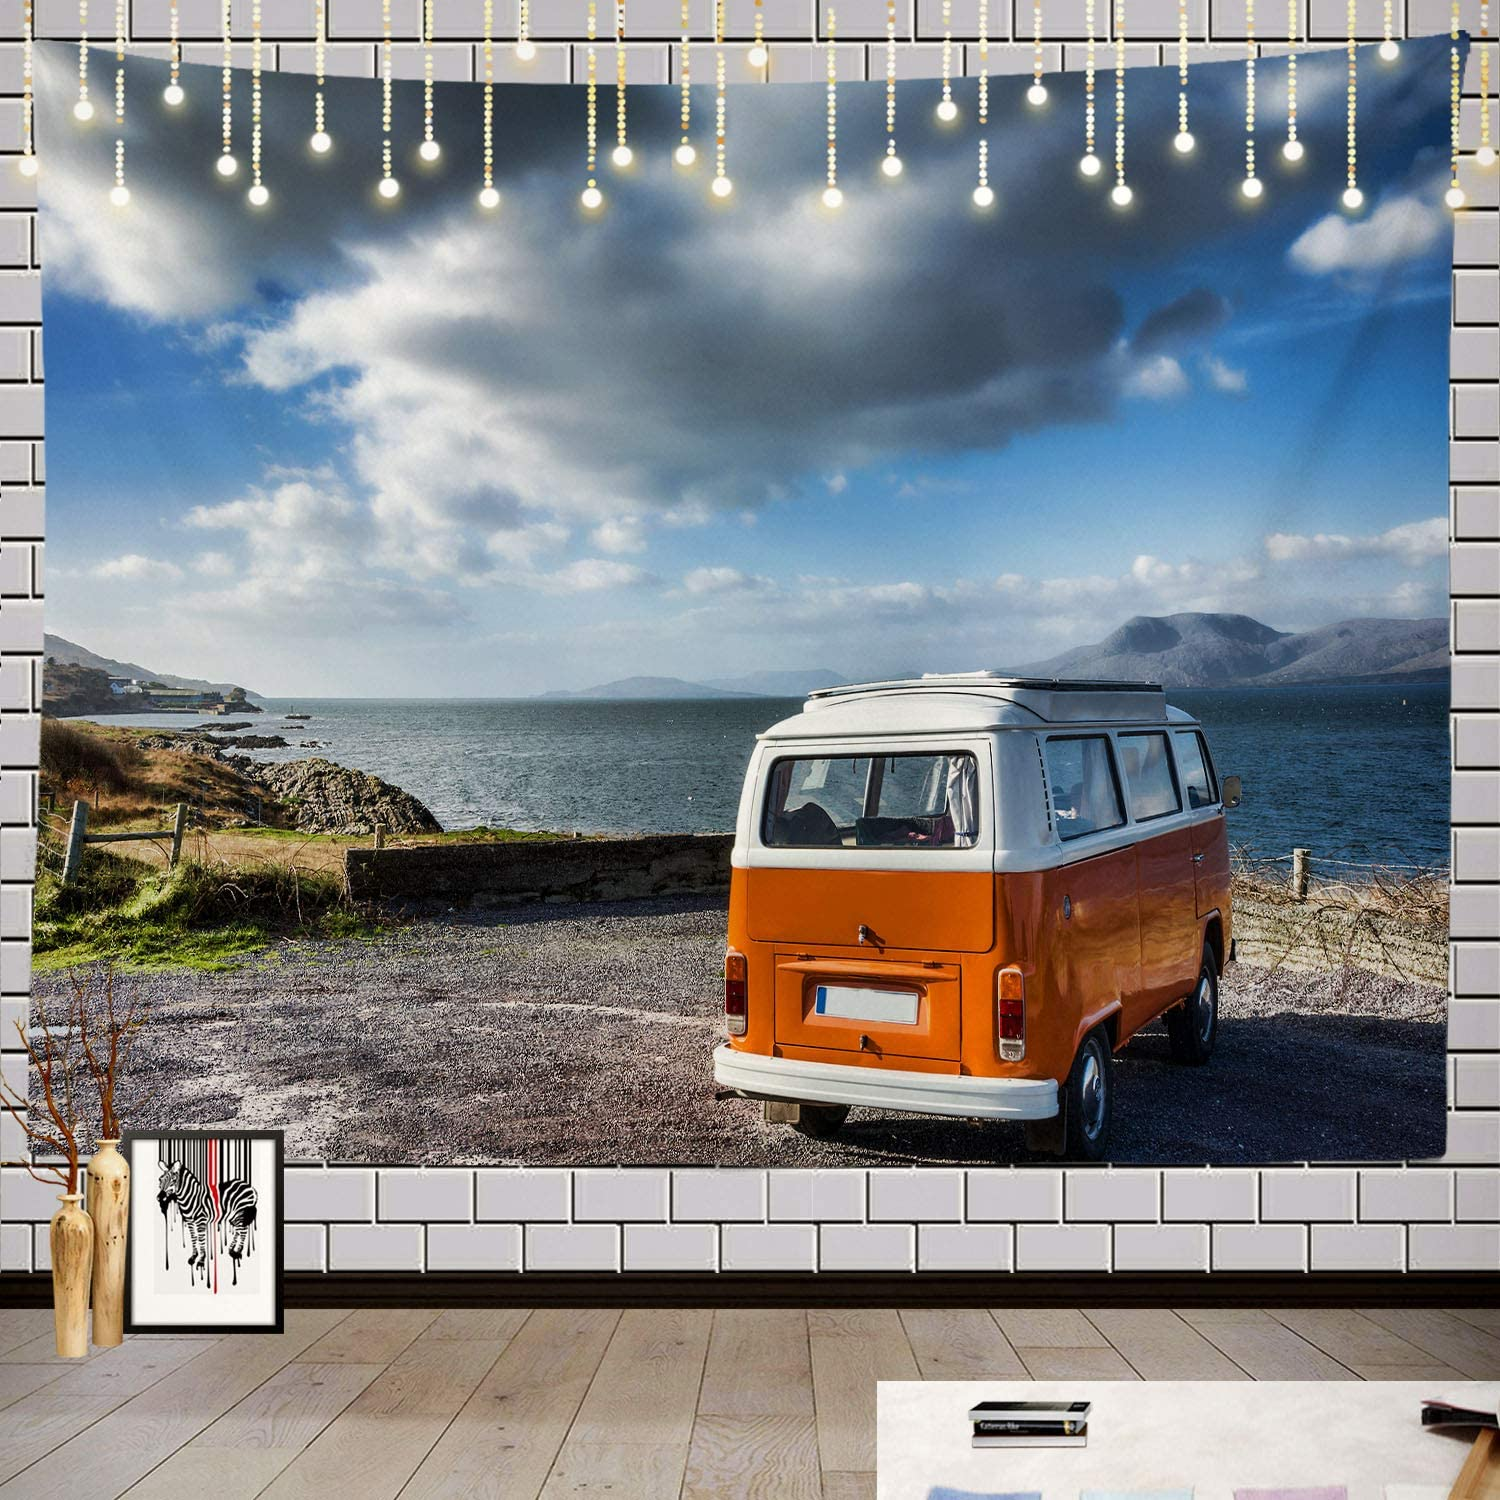 Batmerry Vintage Camping Tapestry, November Vintage Camper Wild Way Bus Camping Picnic Mat Beach Towel Wall Art Decoration for Bedroom Living Room Dorm, 51.2 x 59.1 Inches, Green Orange White